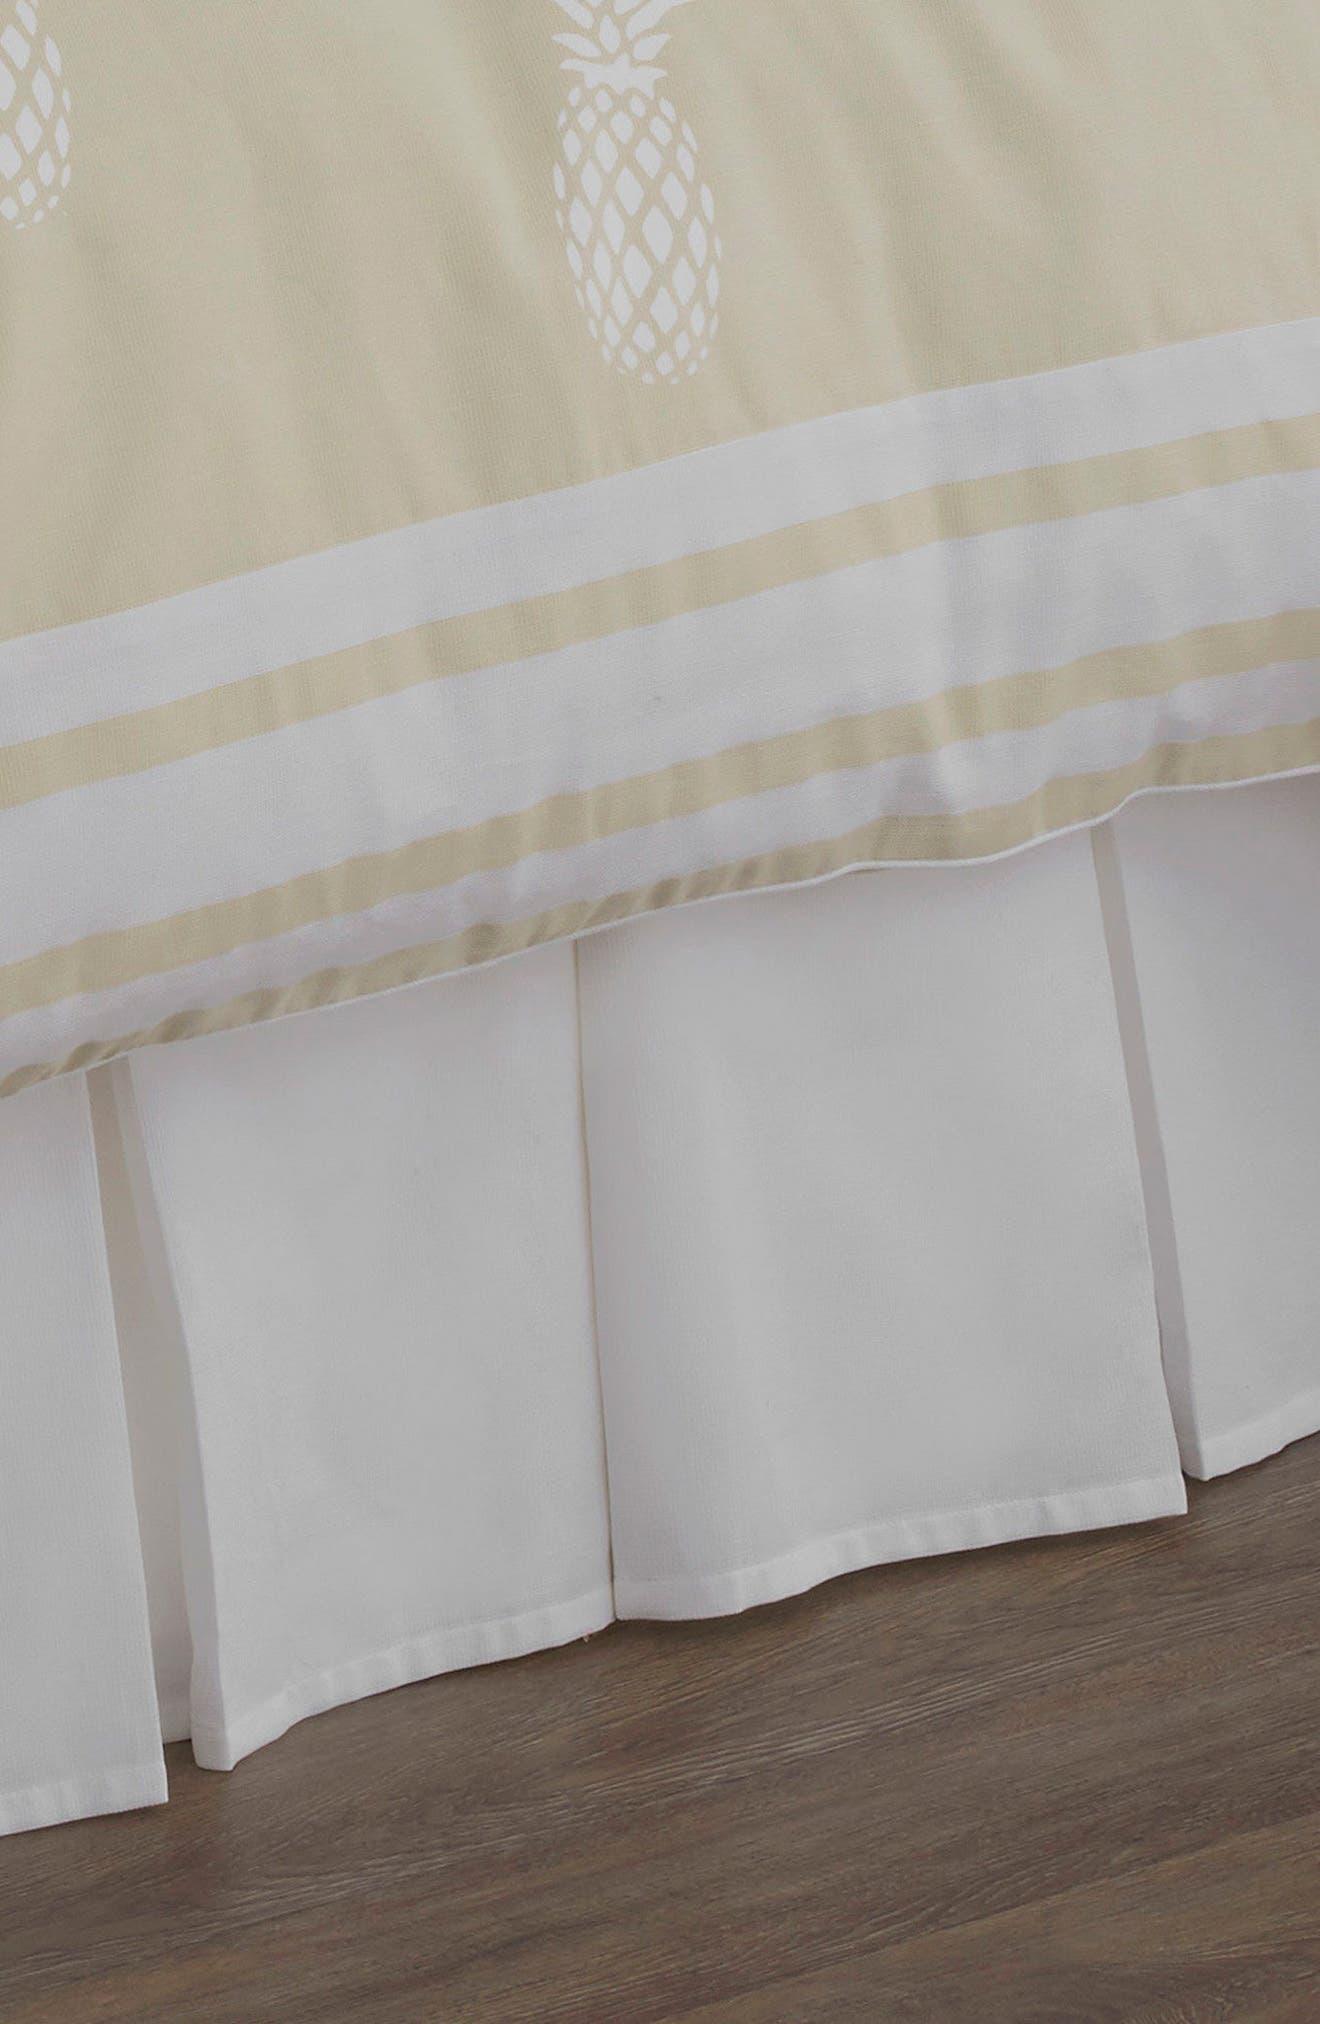 Southern Hospitality Bed Skirt,                             Main thumbnail 1, color,                             100